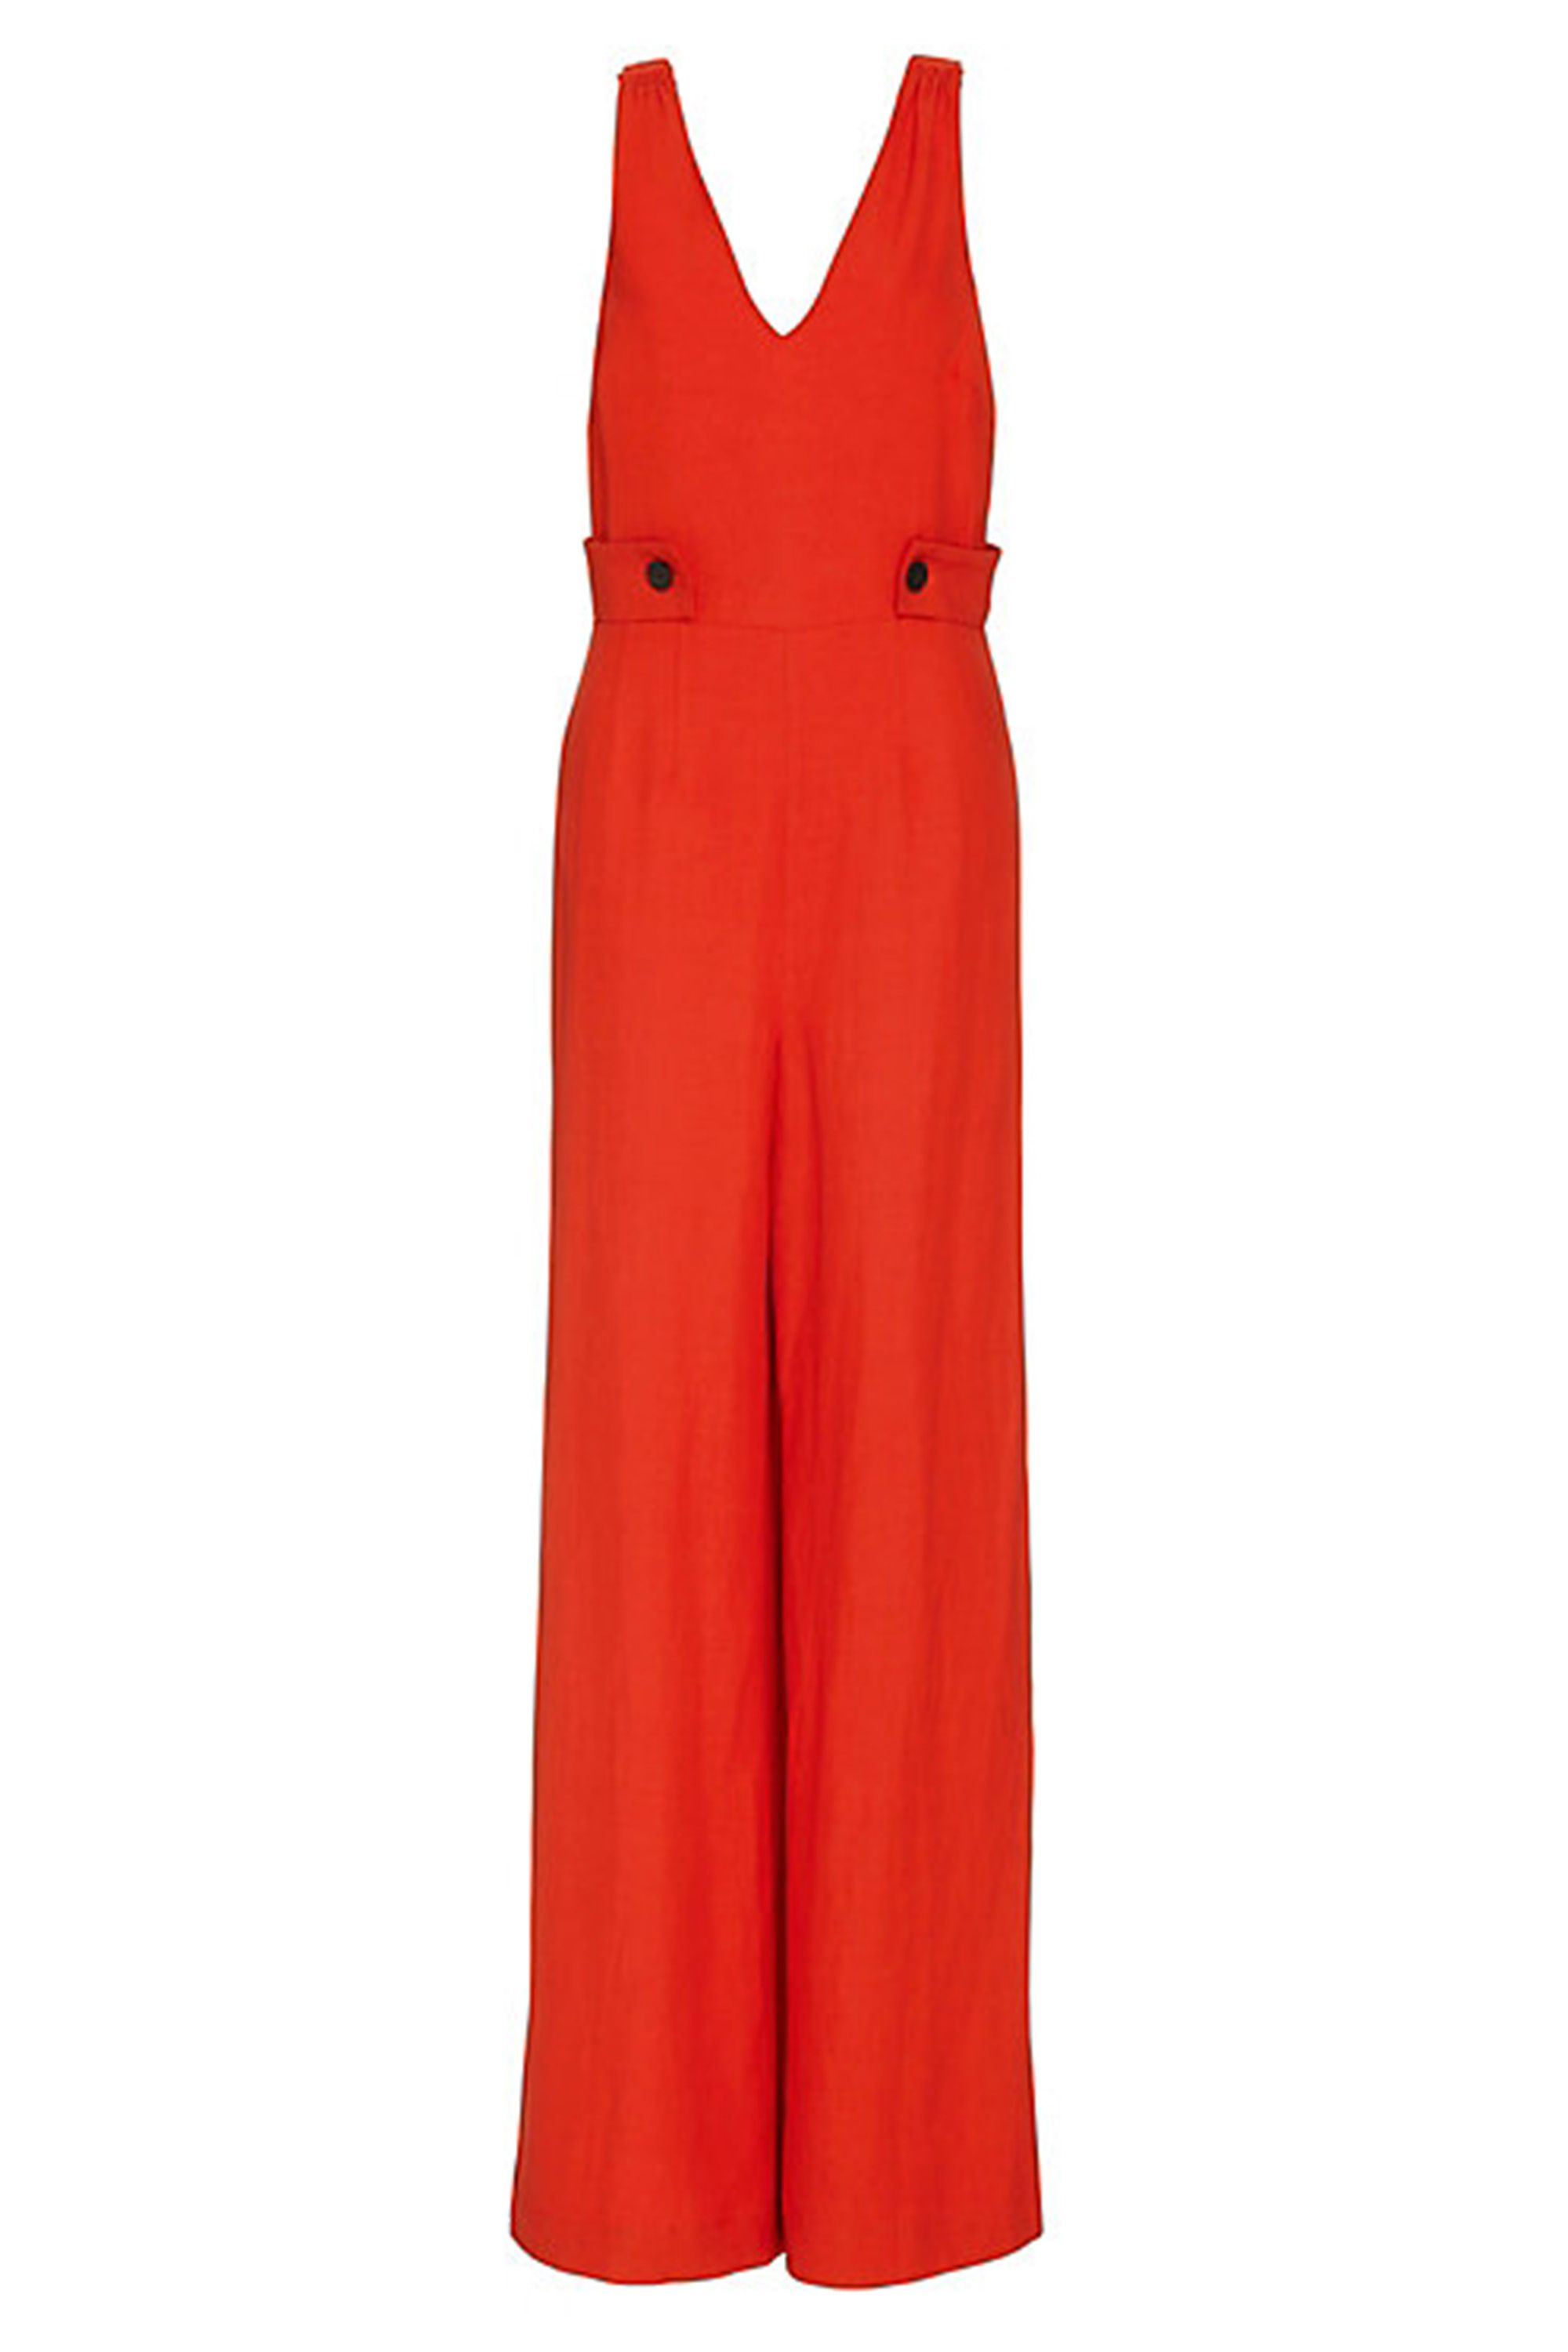 f053e8ebf8c 12 Jumpsuits That Are 100% Office-Friendly